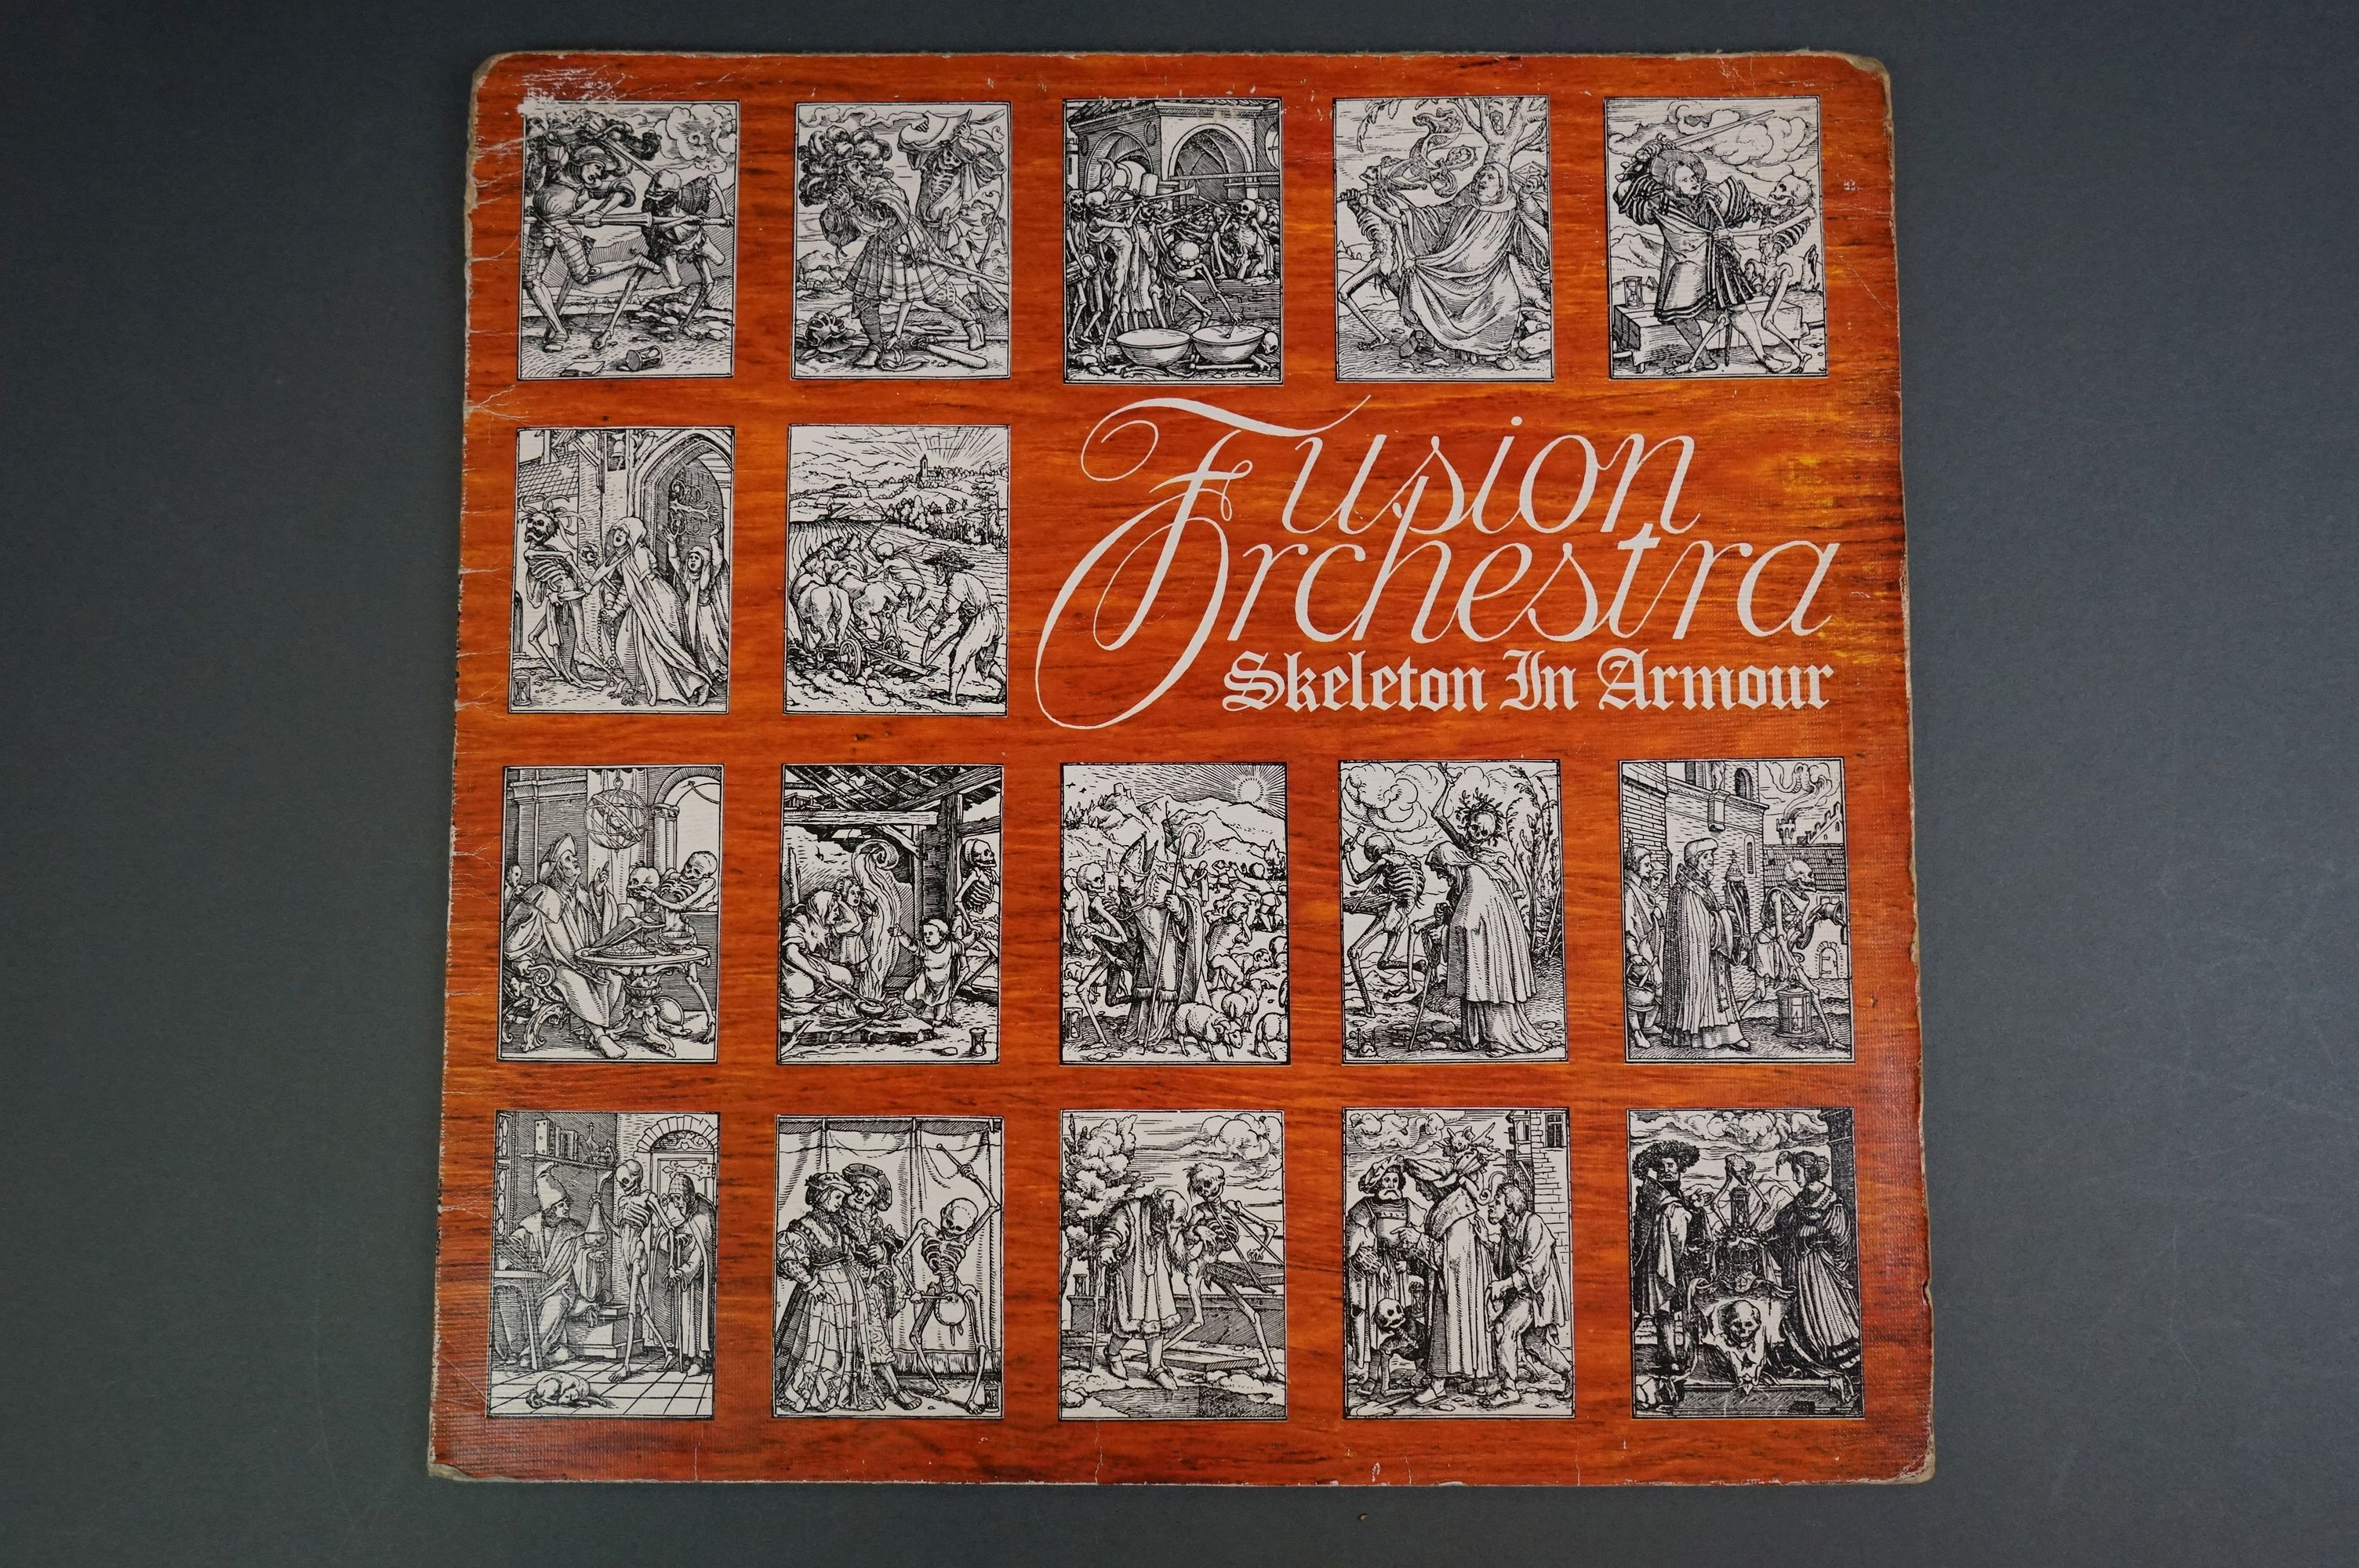 Vinyl - Fusion Orchestra Skeleton In Armour LP EMA758, sleeve vg+ with buffering to corners,